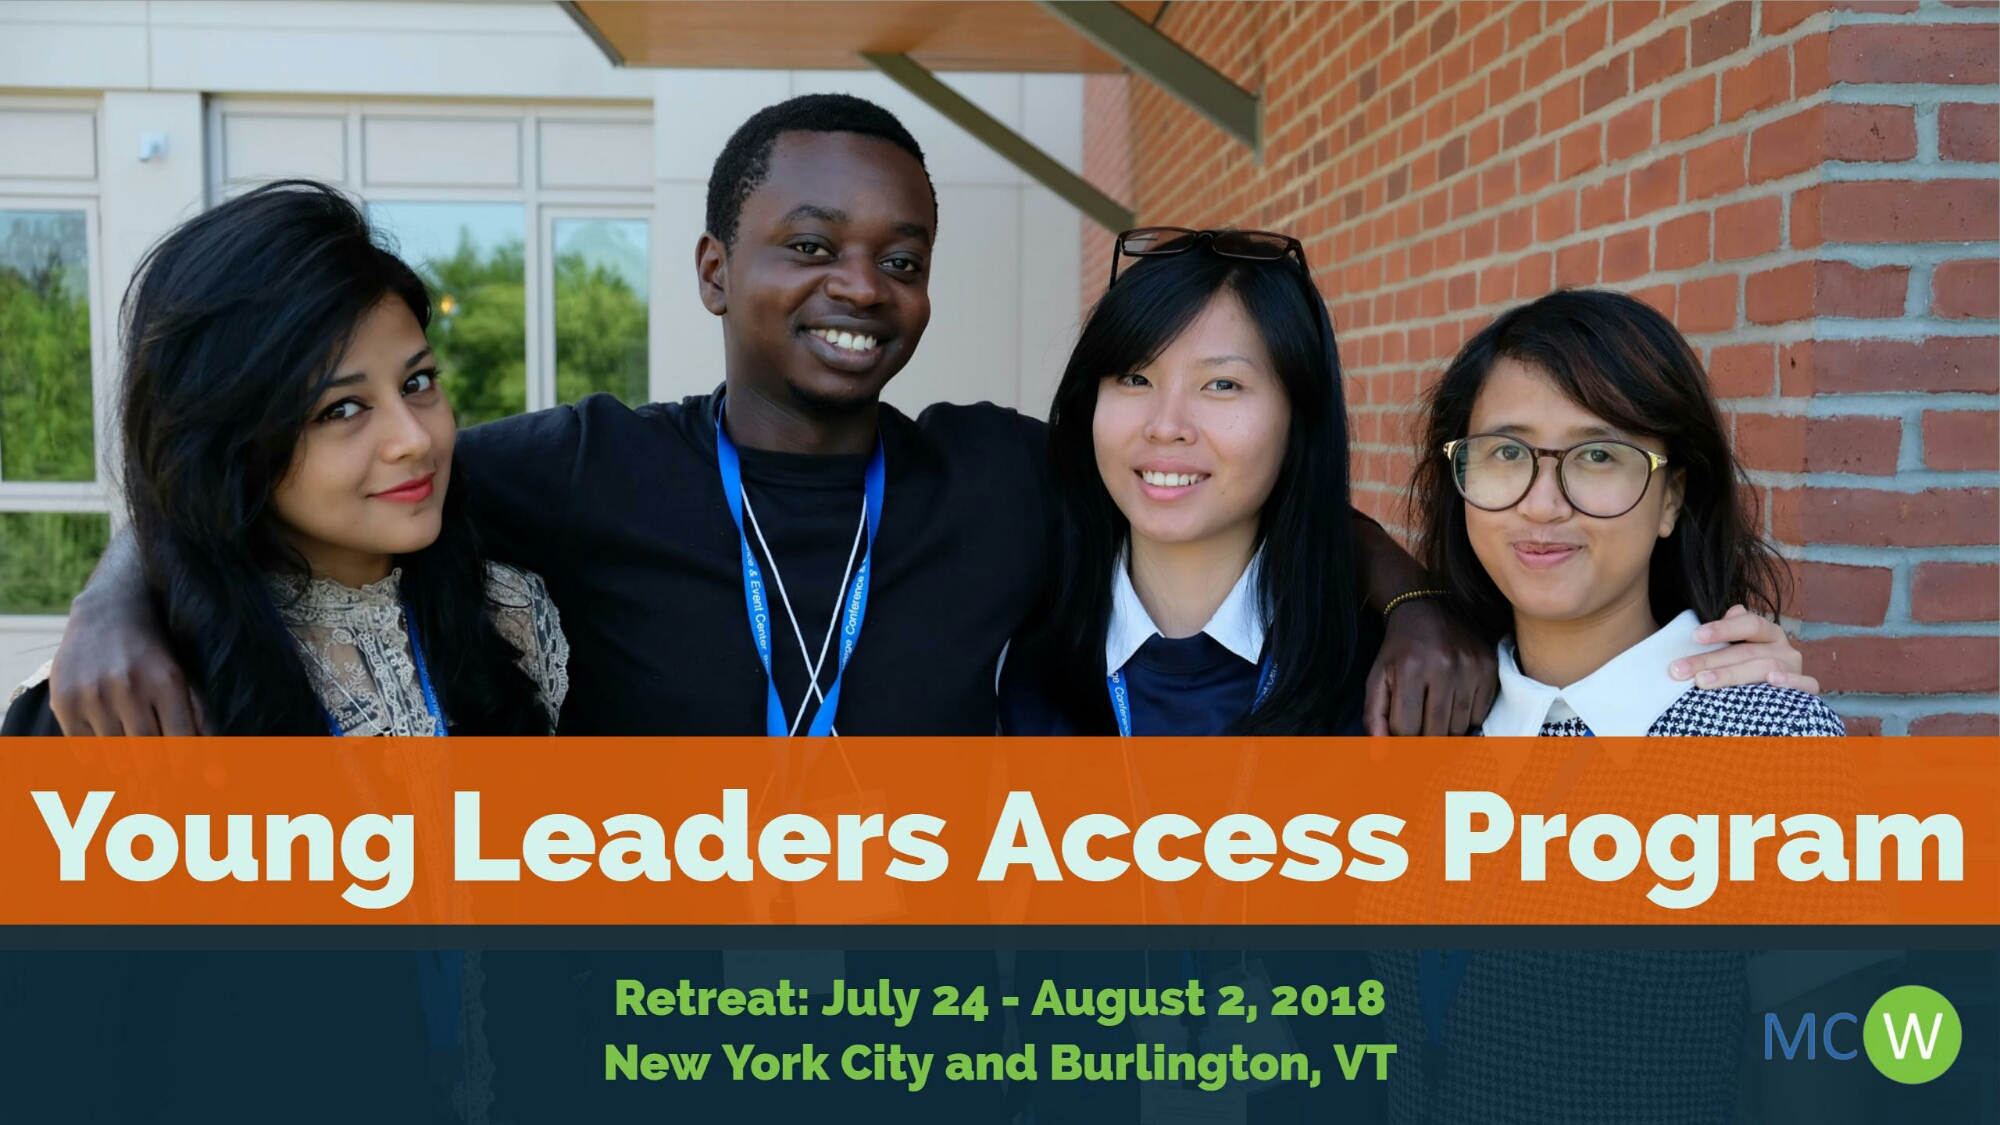 (Fully Funded) MCW Young Leaders Access Program USA 2018